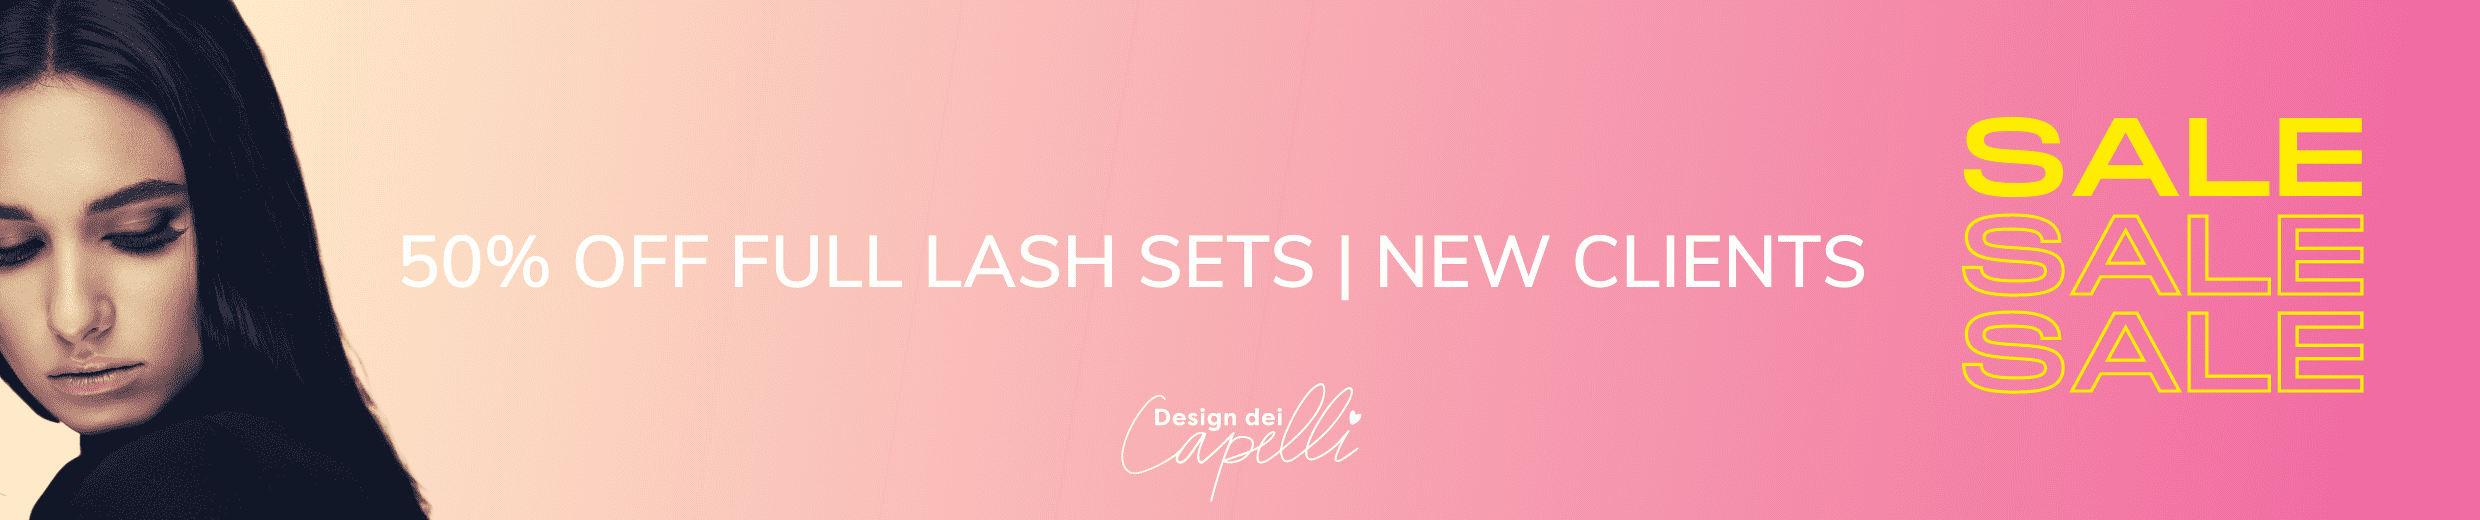 August New Client Promo | Eyelash Extensions Denver